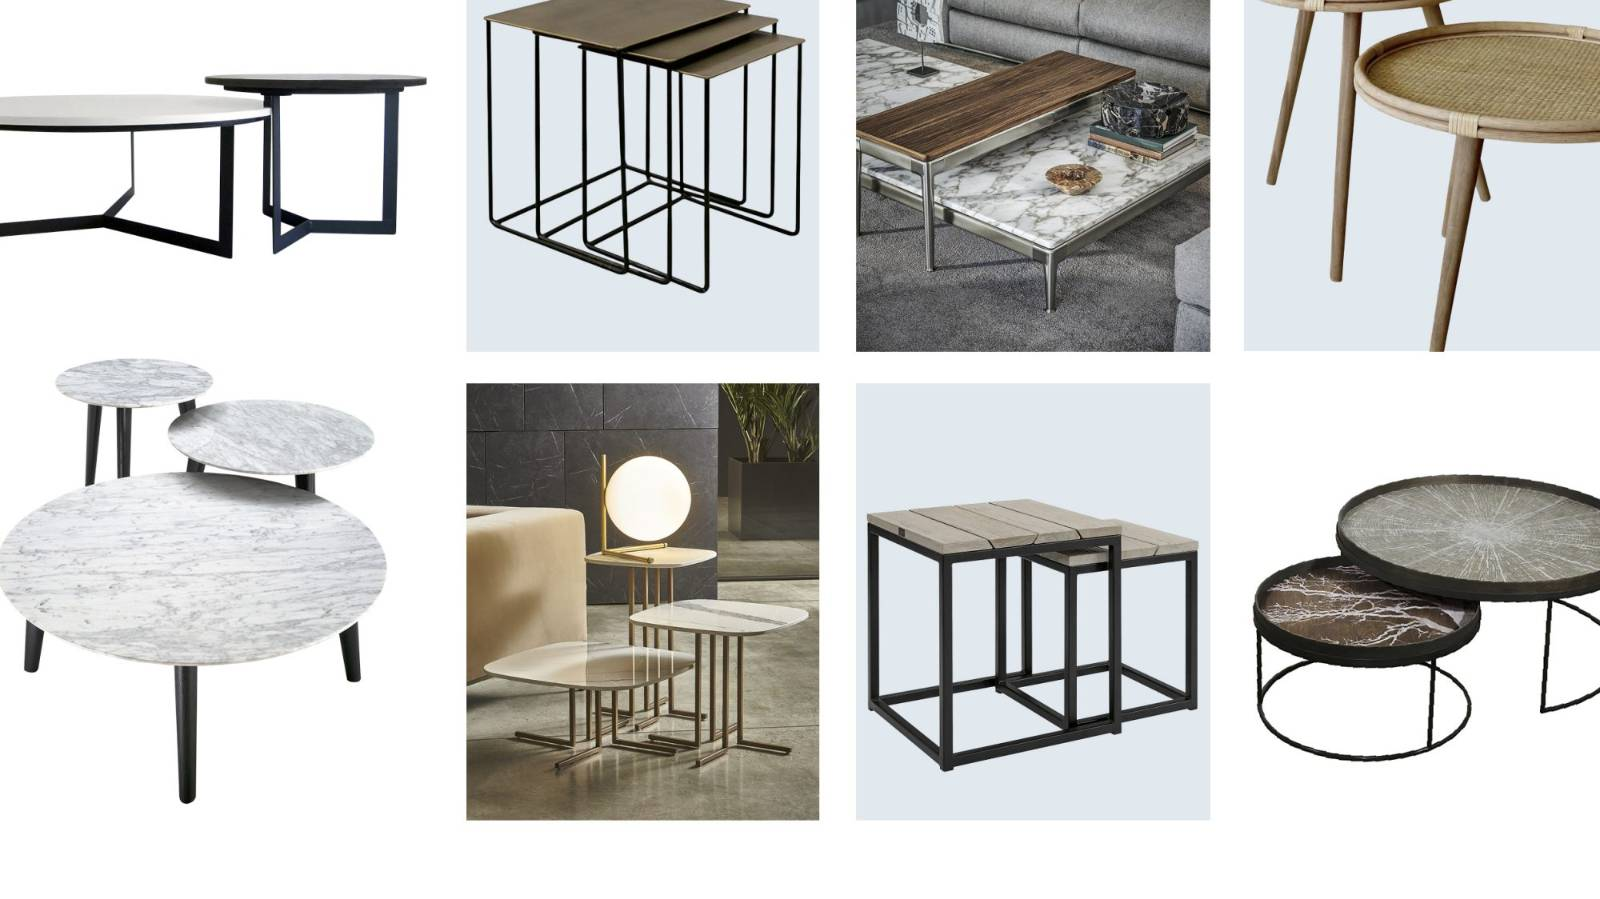 On the table: Handy and practical nesting tables